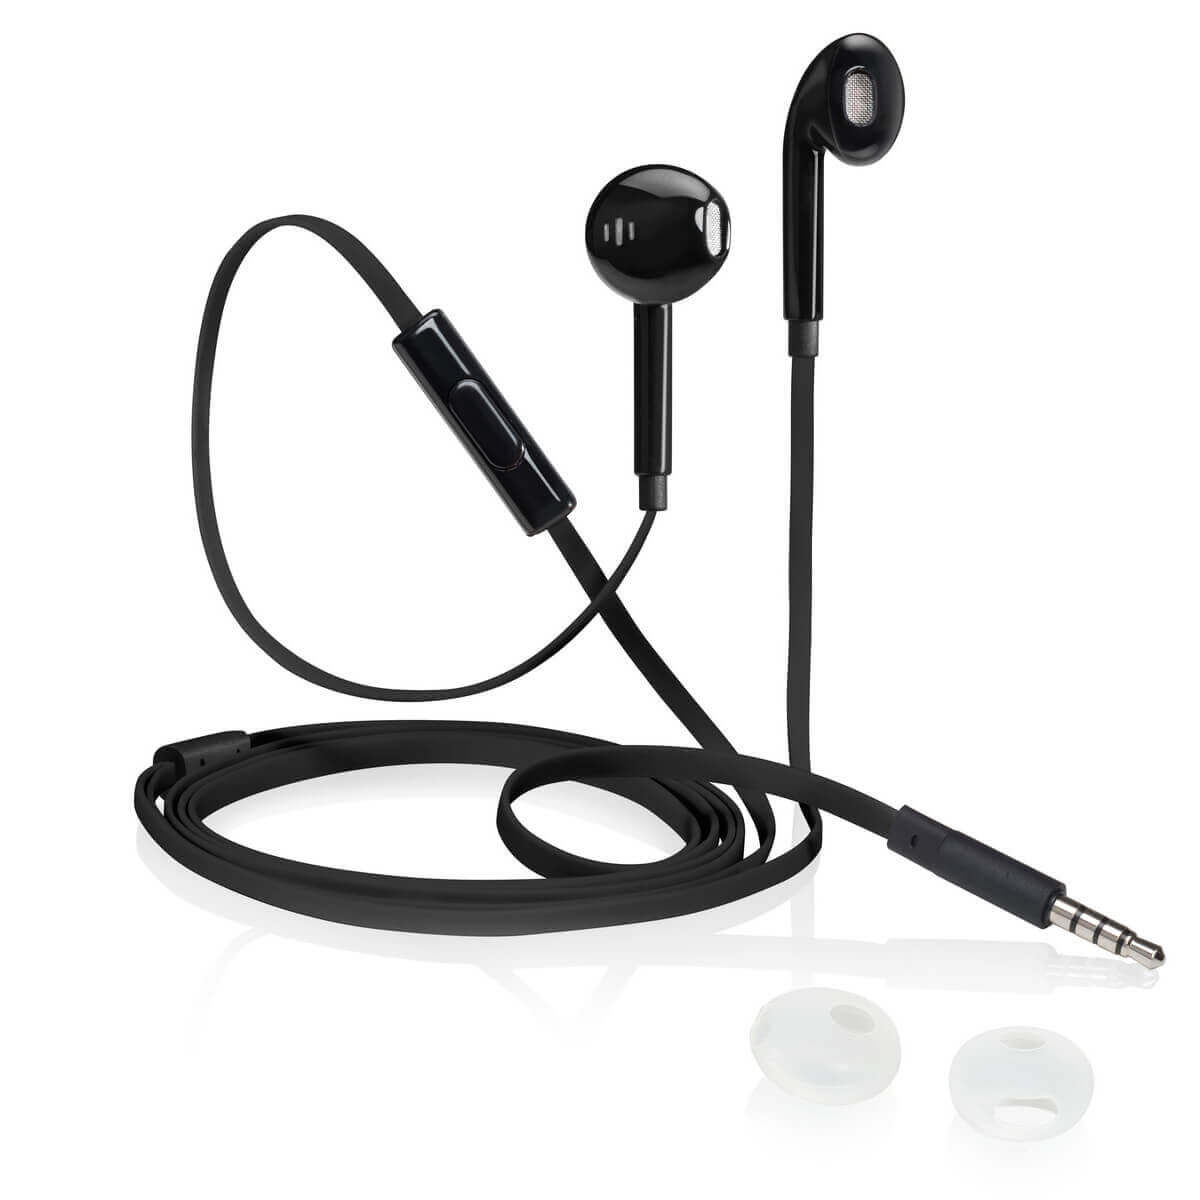 iStore Classic Fit Earbuds (Glossy Black)